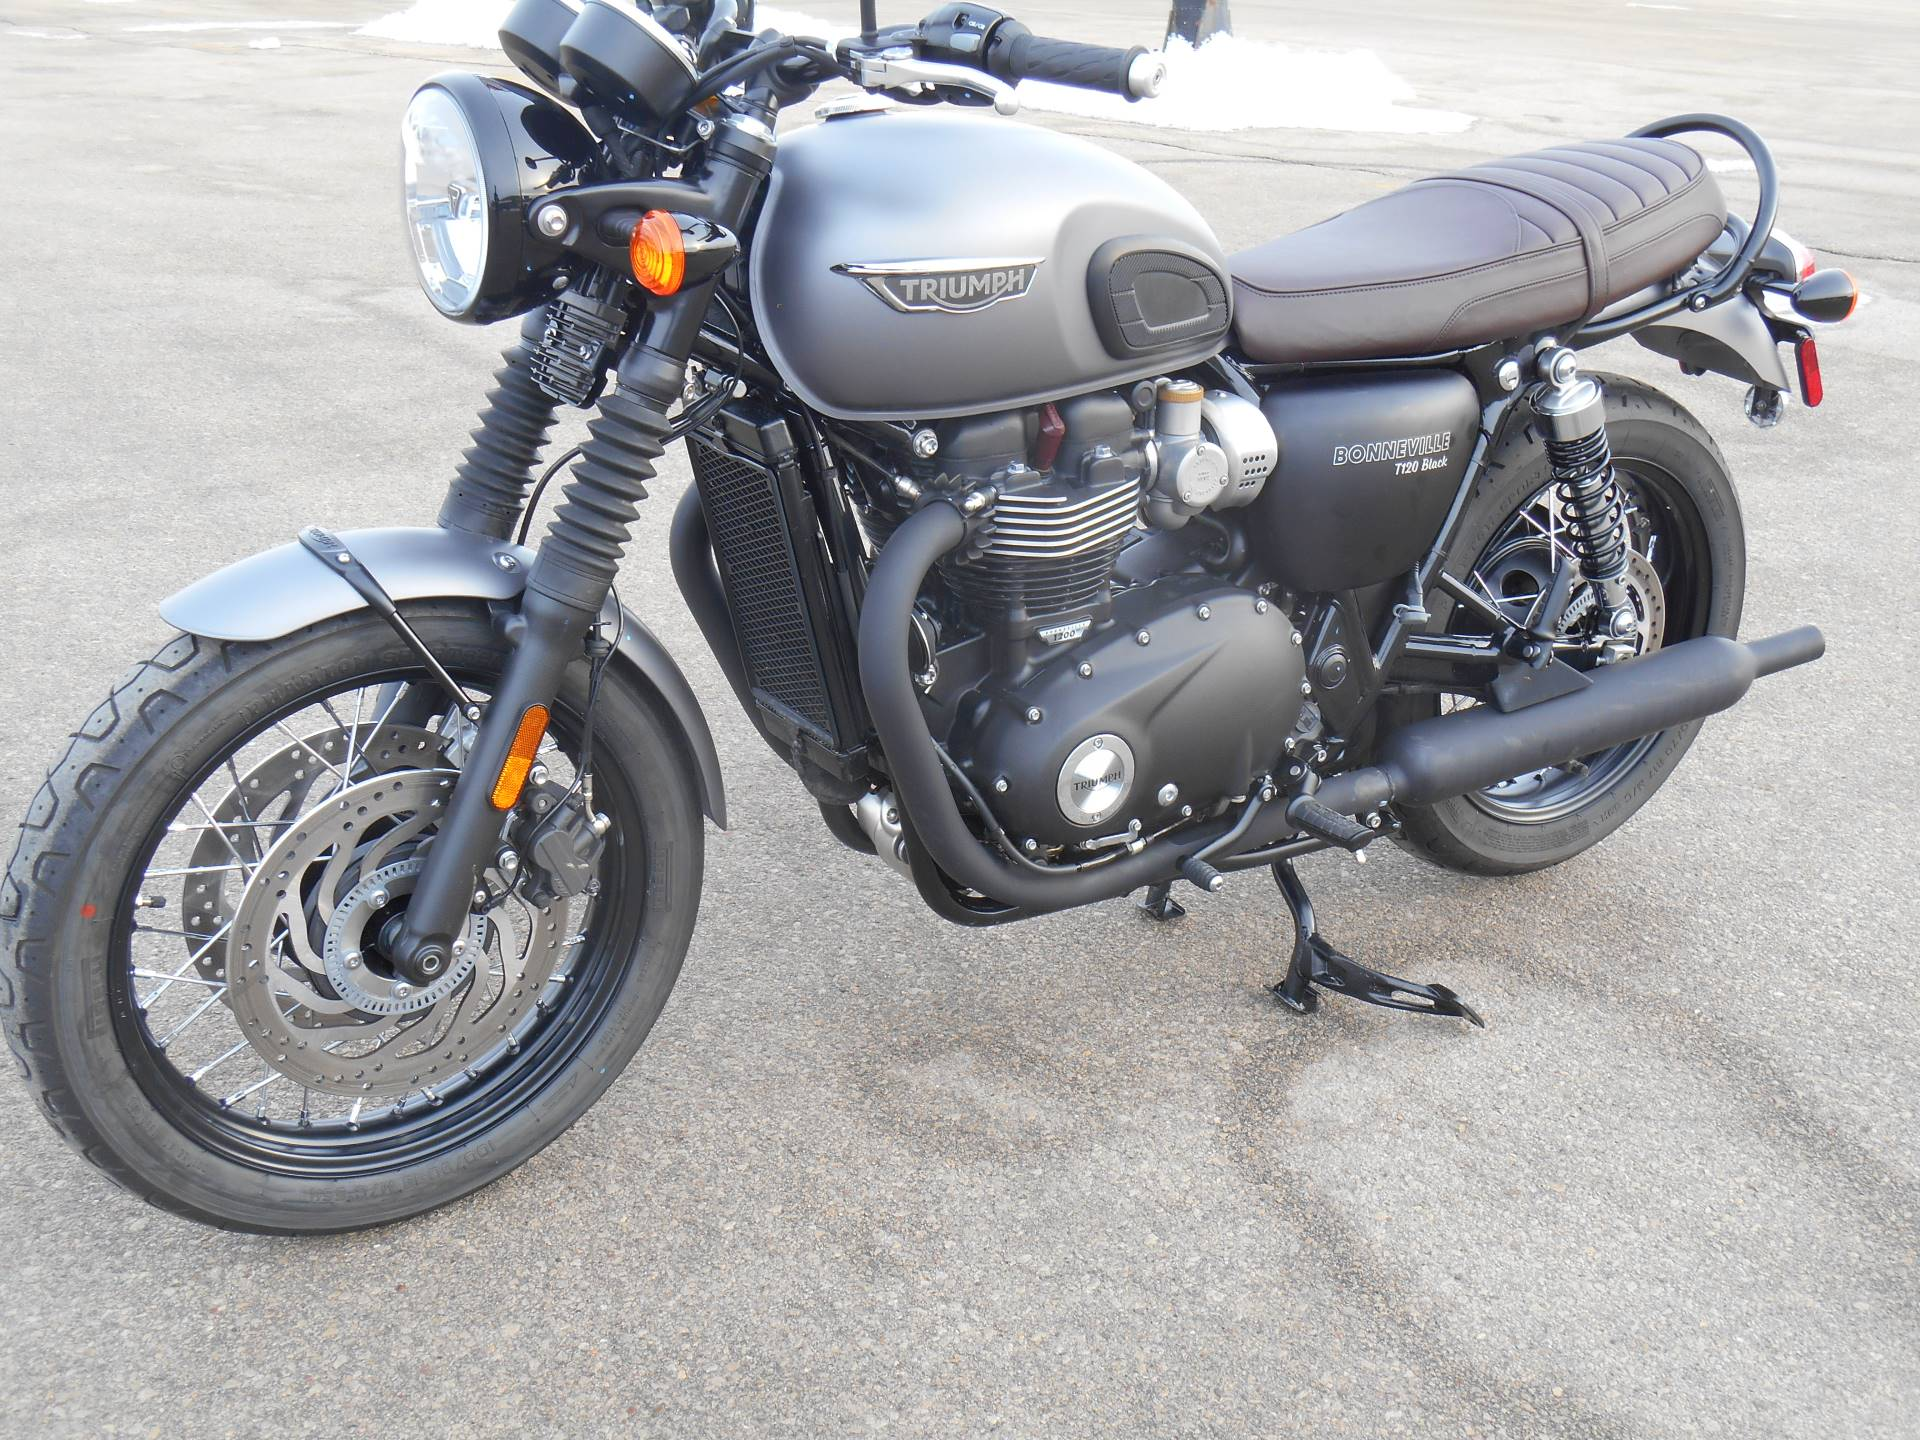 2018 Triumph Bonneville T120 Black in Dubuque, Iowa - Photo 4